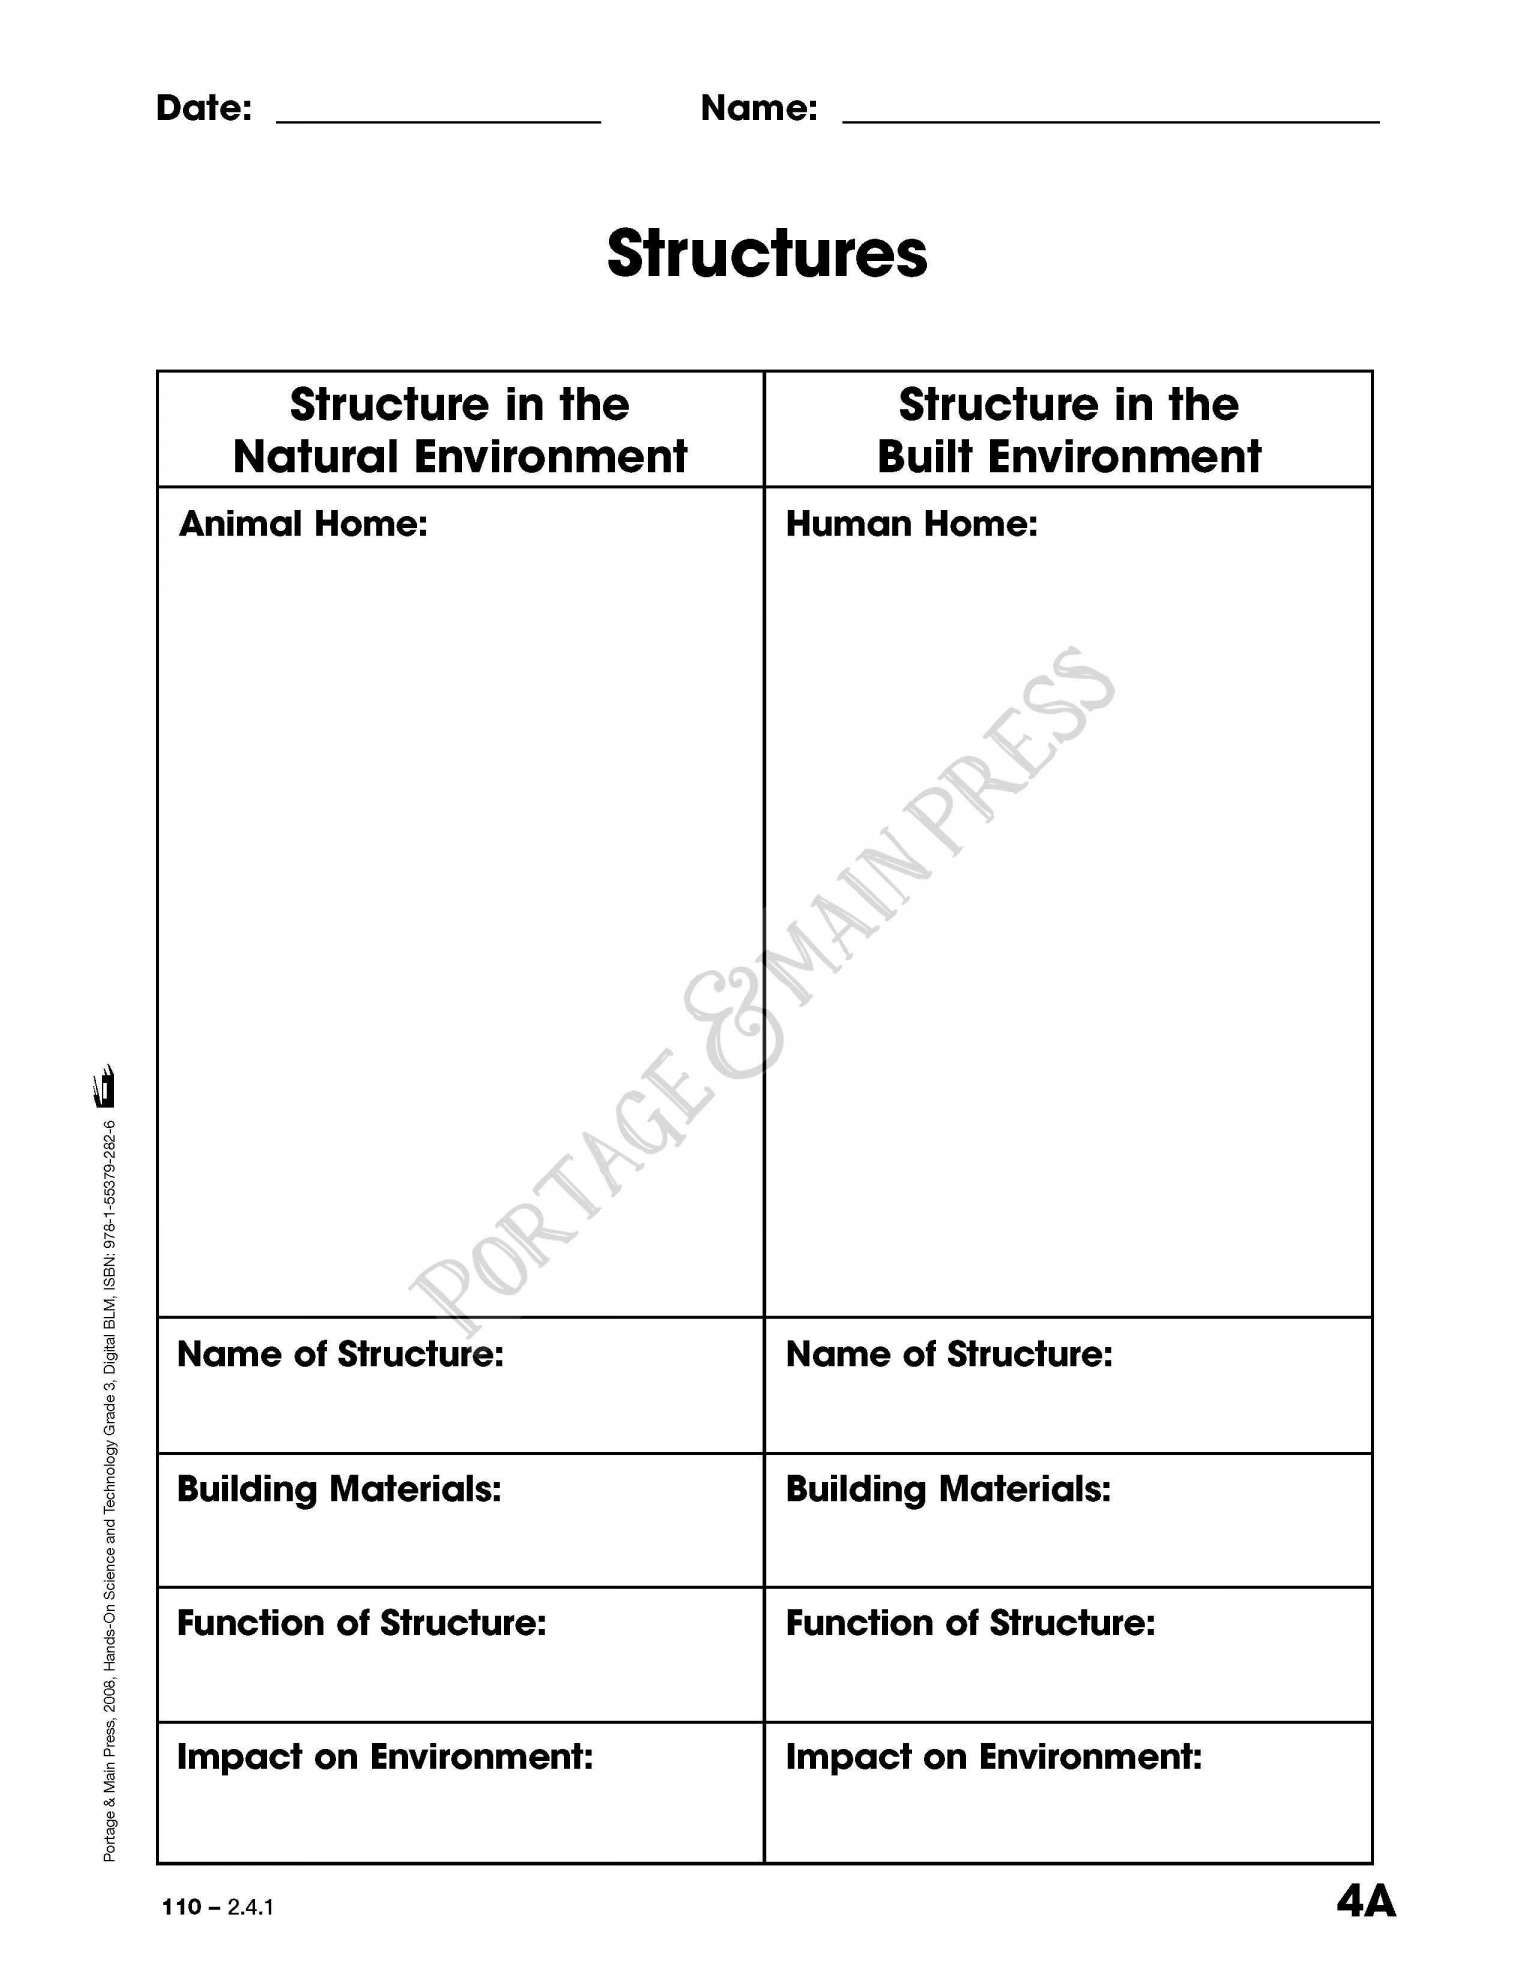 Properties Of Materials Science Worksheet and Grade Science - Structures  Activity Sheet   Structures An…   Science worksheets [ 1980 x 1530 Pixel ]